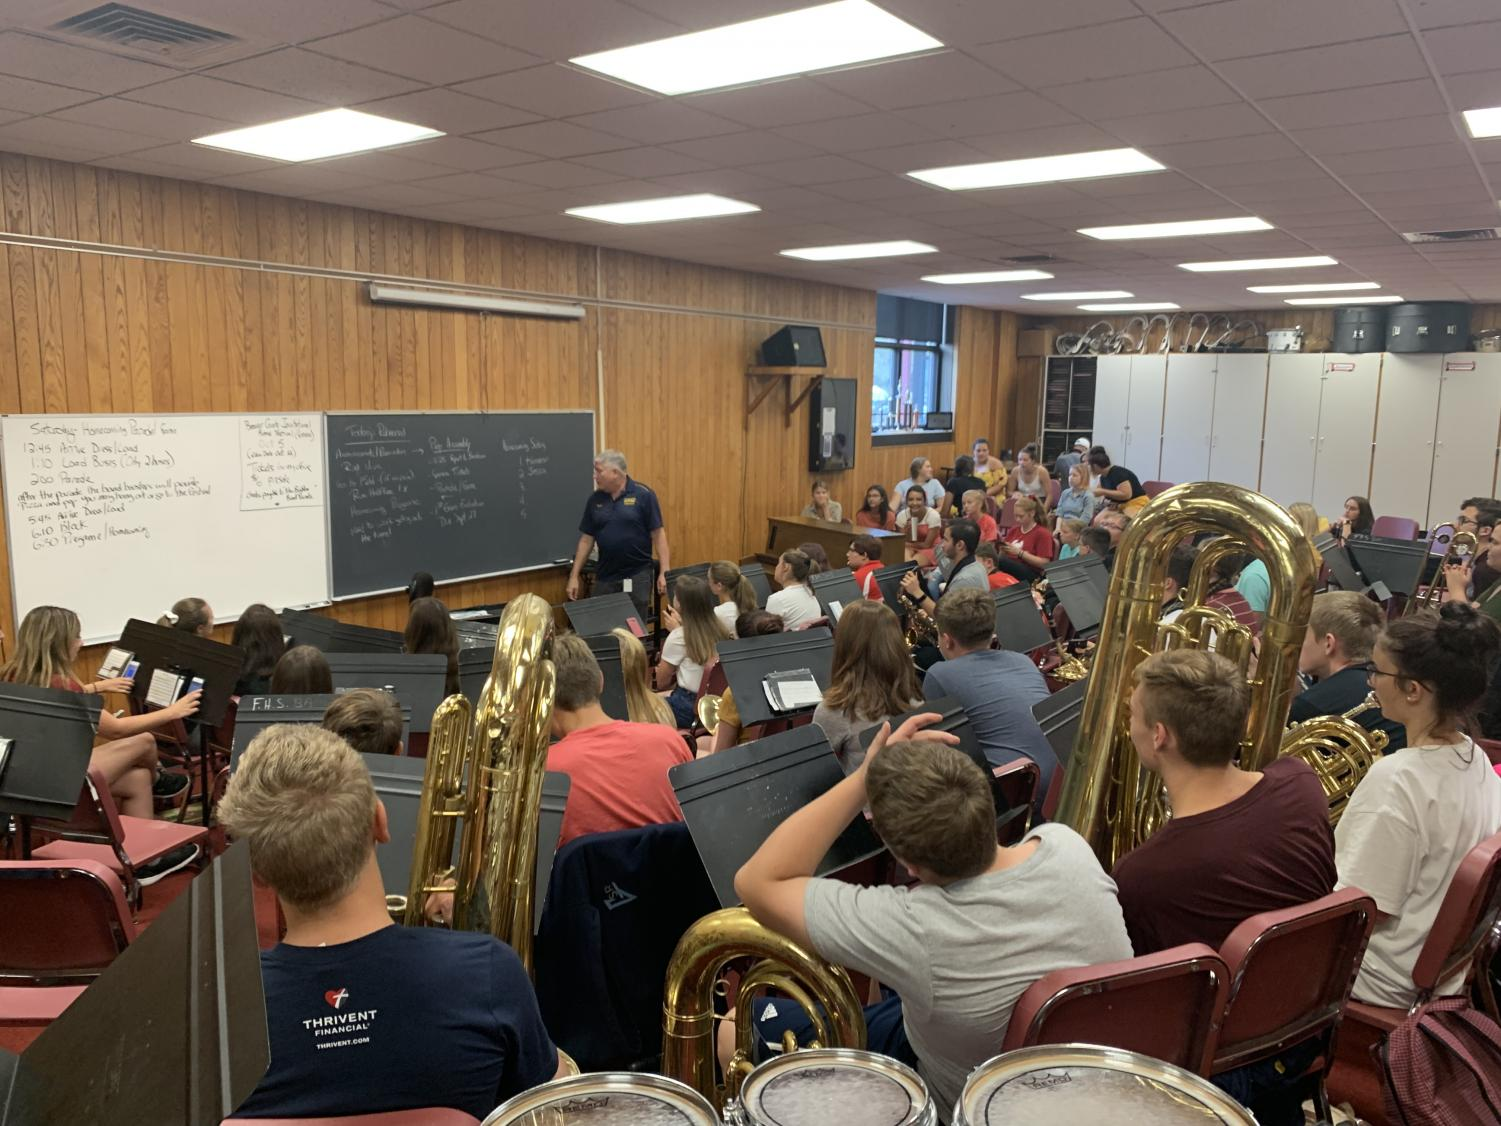 Band teacher, Robert James is updating the band class of upcoming events and new music they will be playing.